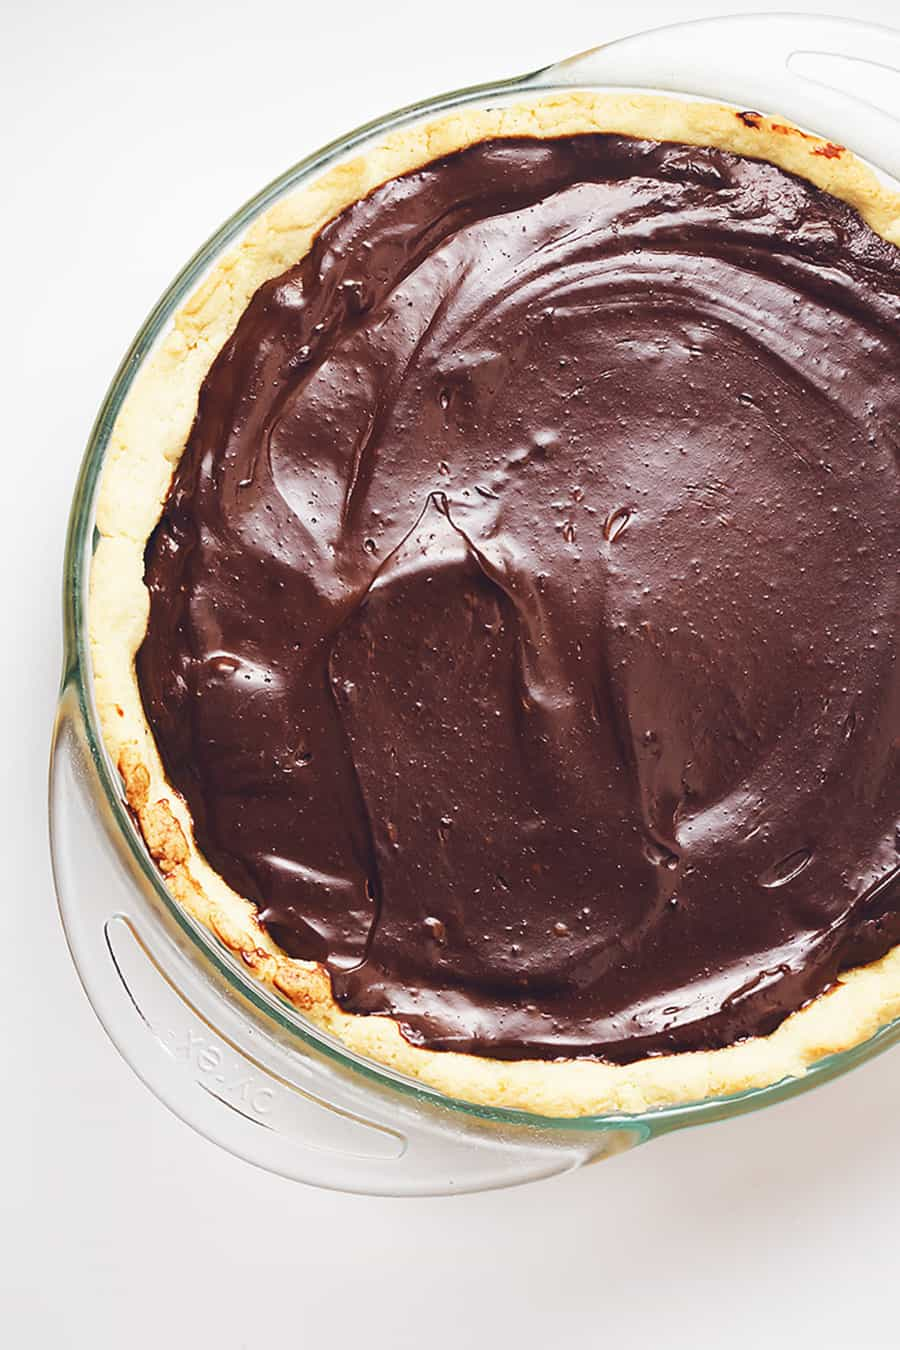 a whole sugar free chocolate pie